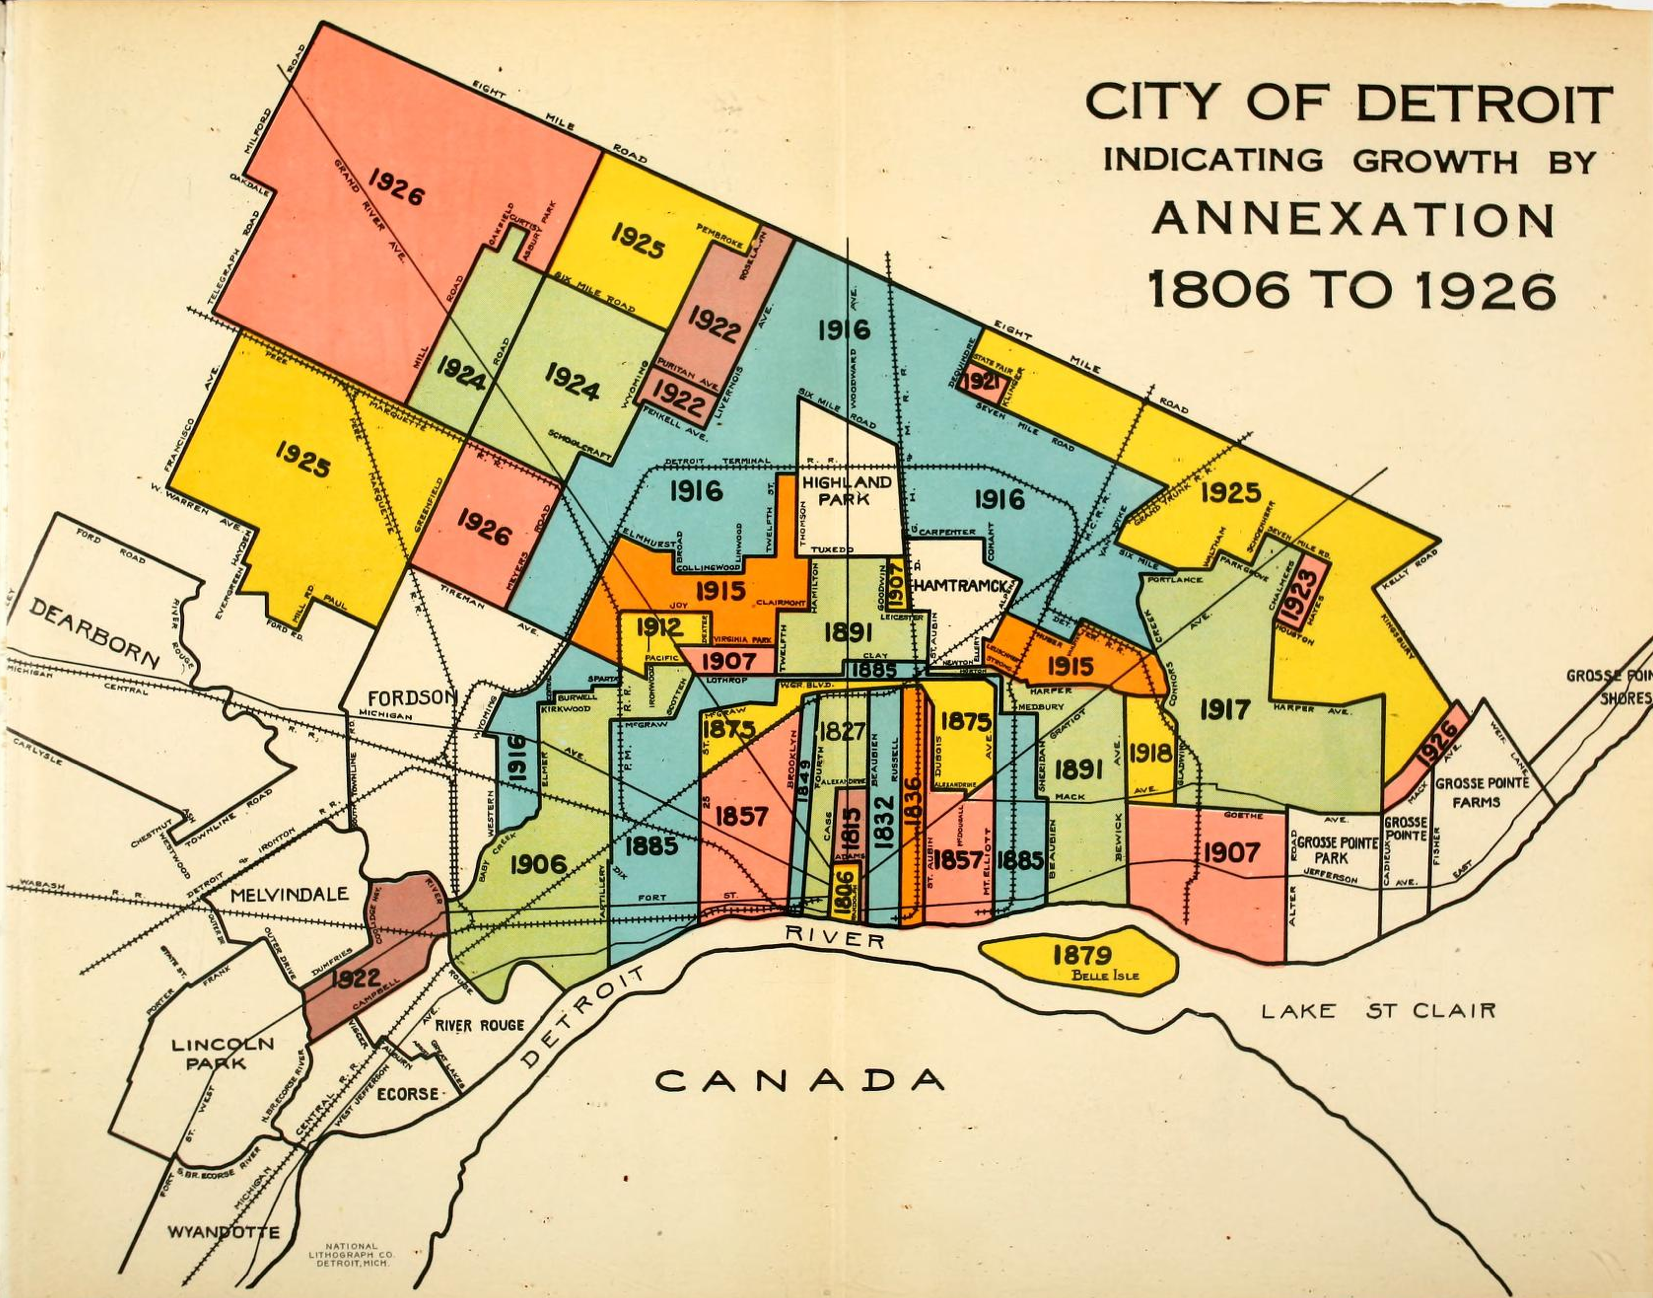 Map Color Coded Detroit Growth by Annexation